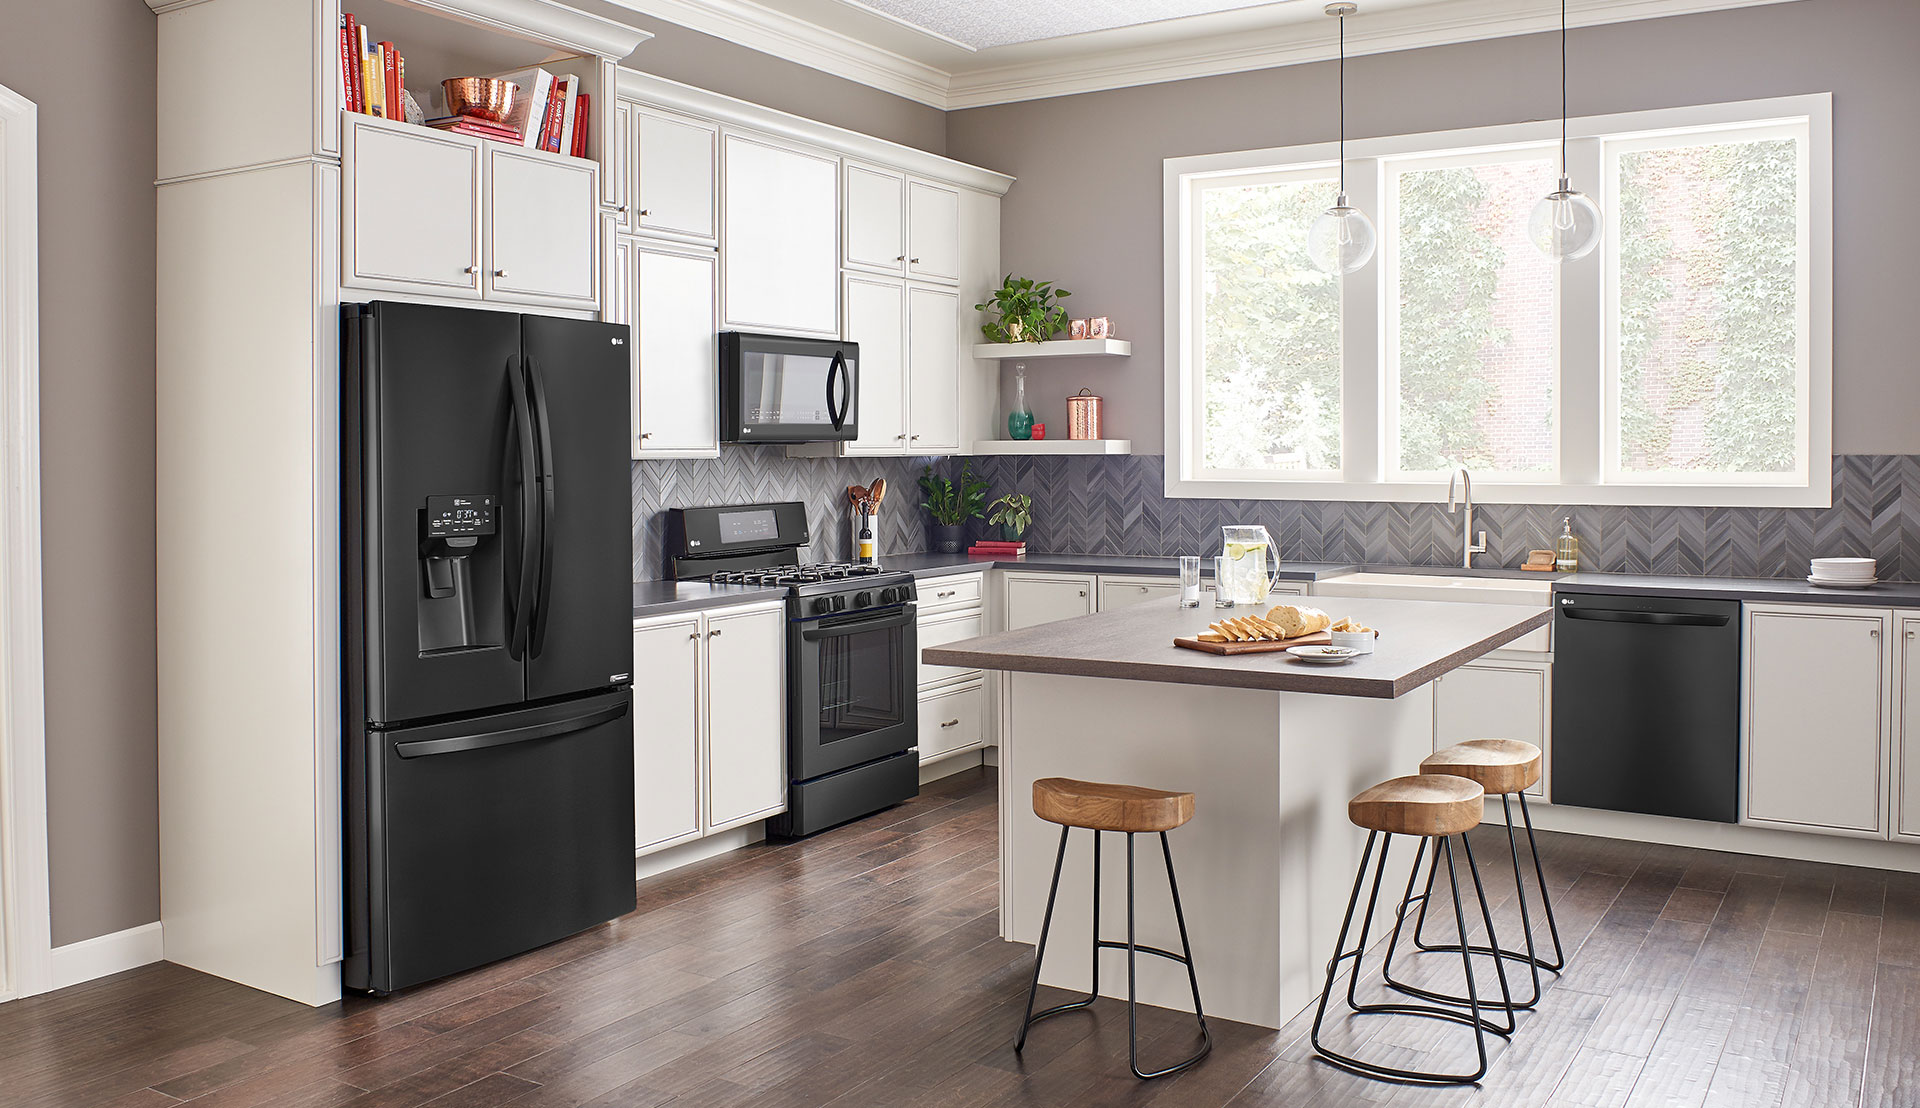 Best Kitchen Gallery: Kitchens Continue To Get Smarter of Traditional Kitchen Appliances on rachelxblog.com